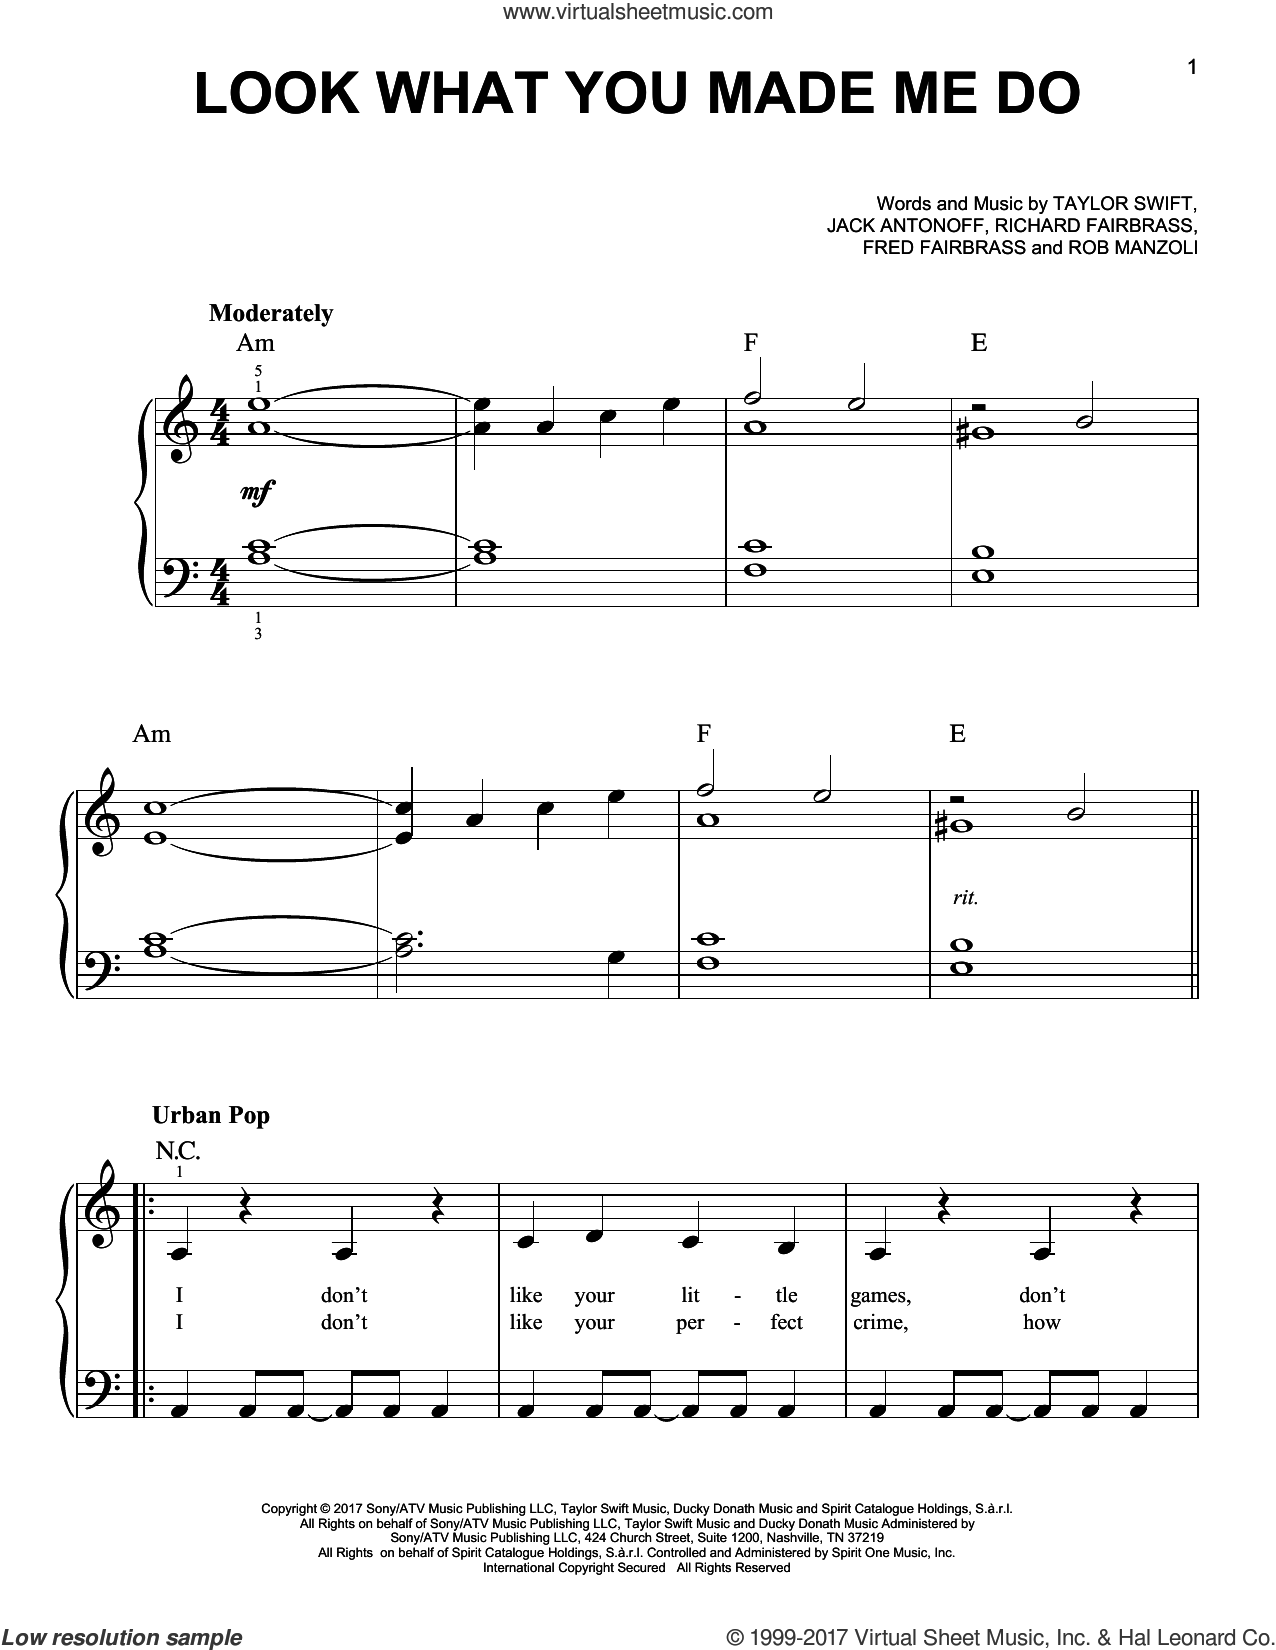 Look What You Made Me Do sheet music for piano solo by Taylor Swift, Fred Fairbrass, Jack Antonoff, Richard Fairbrass and Rob Manzoli, easy. Score Image Preview.